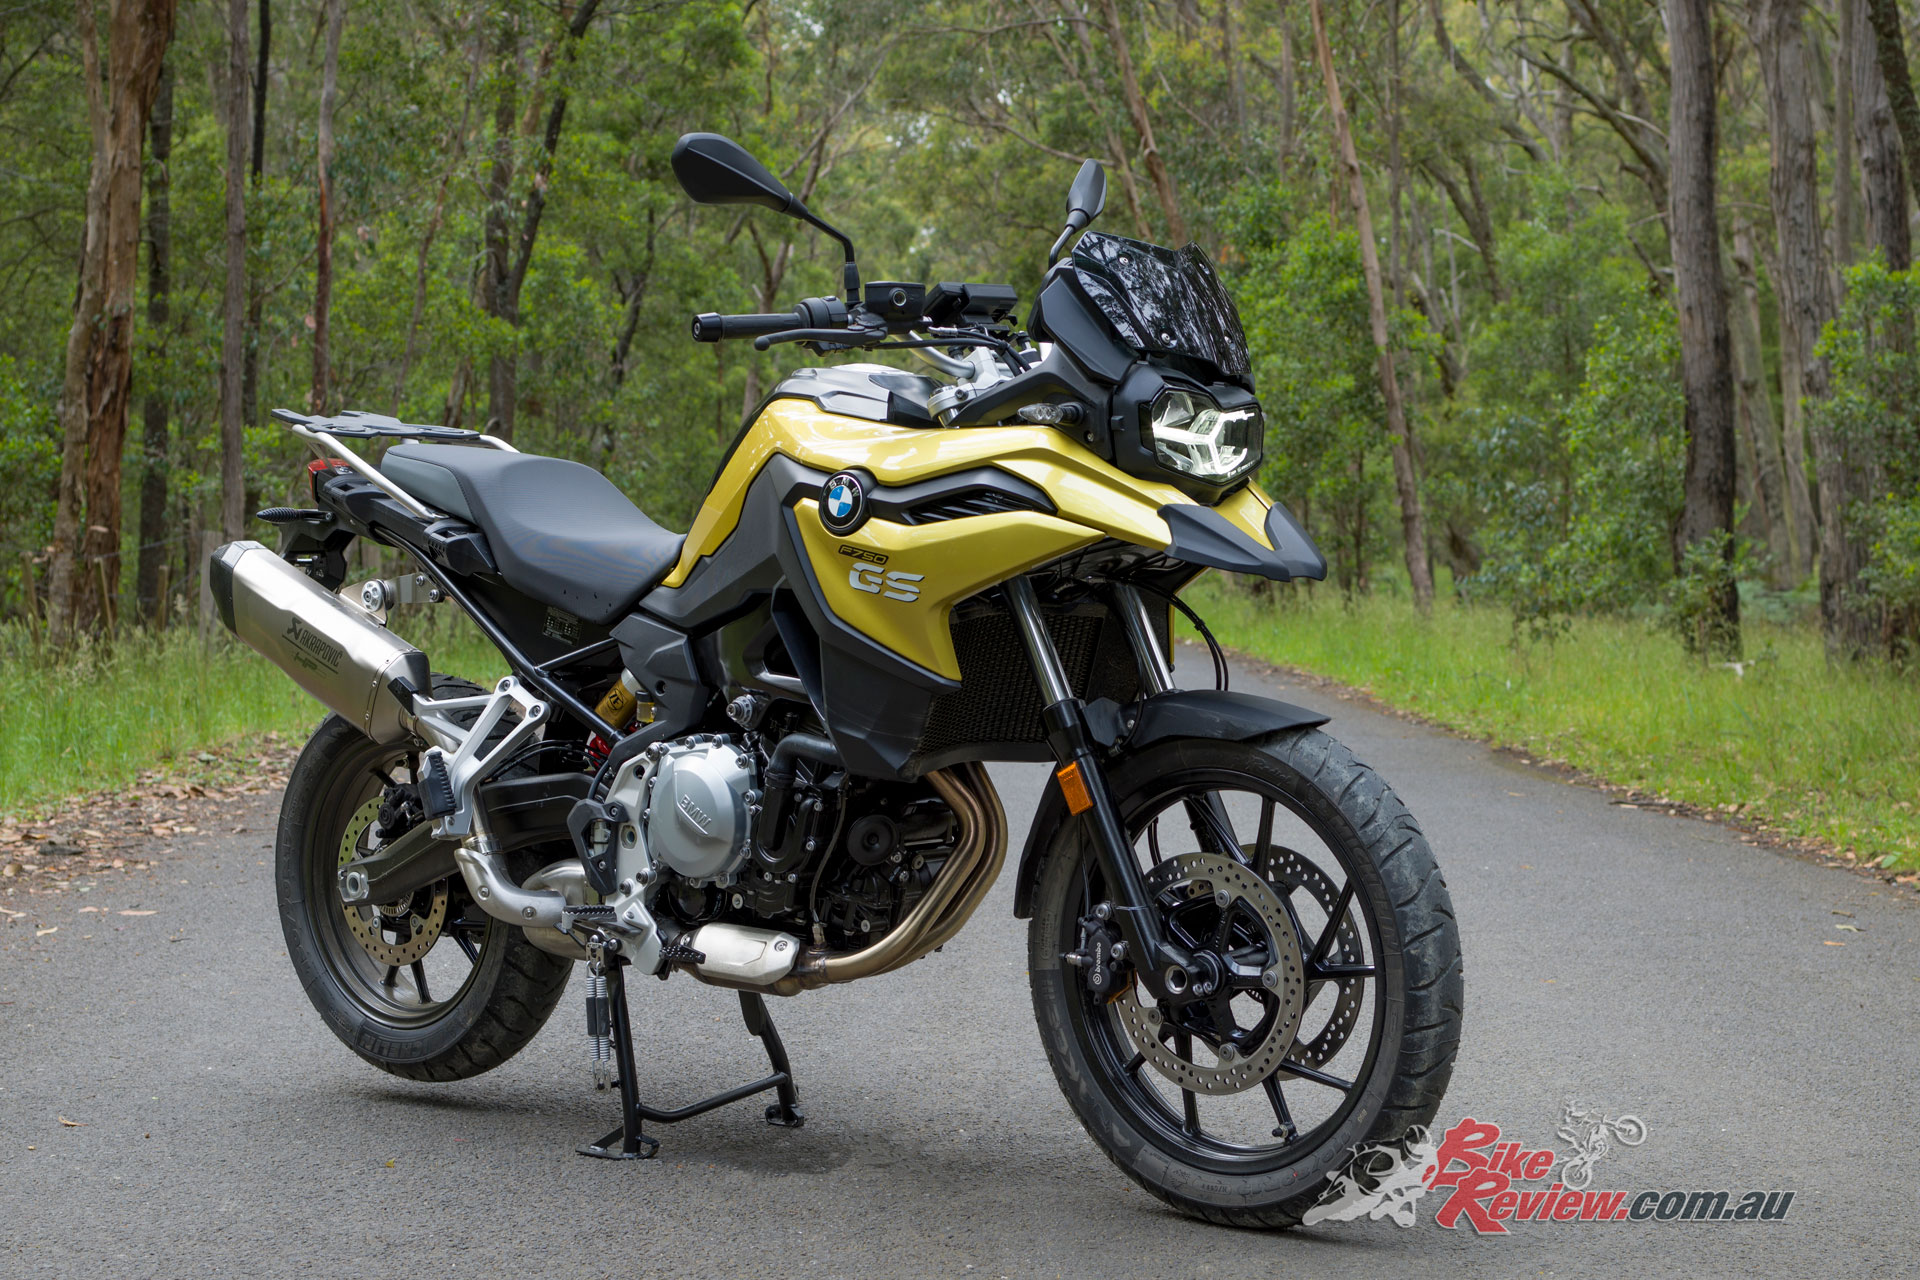 The adventure-touring segment is proving very strong, as demonstrated by the F 750 GS, offering great road performance with formidable off-road ability thrown in to varying extents